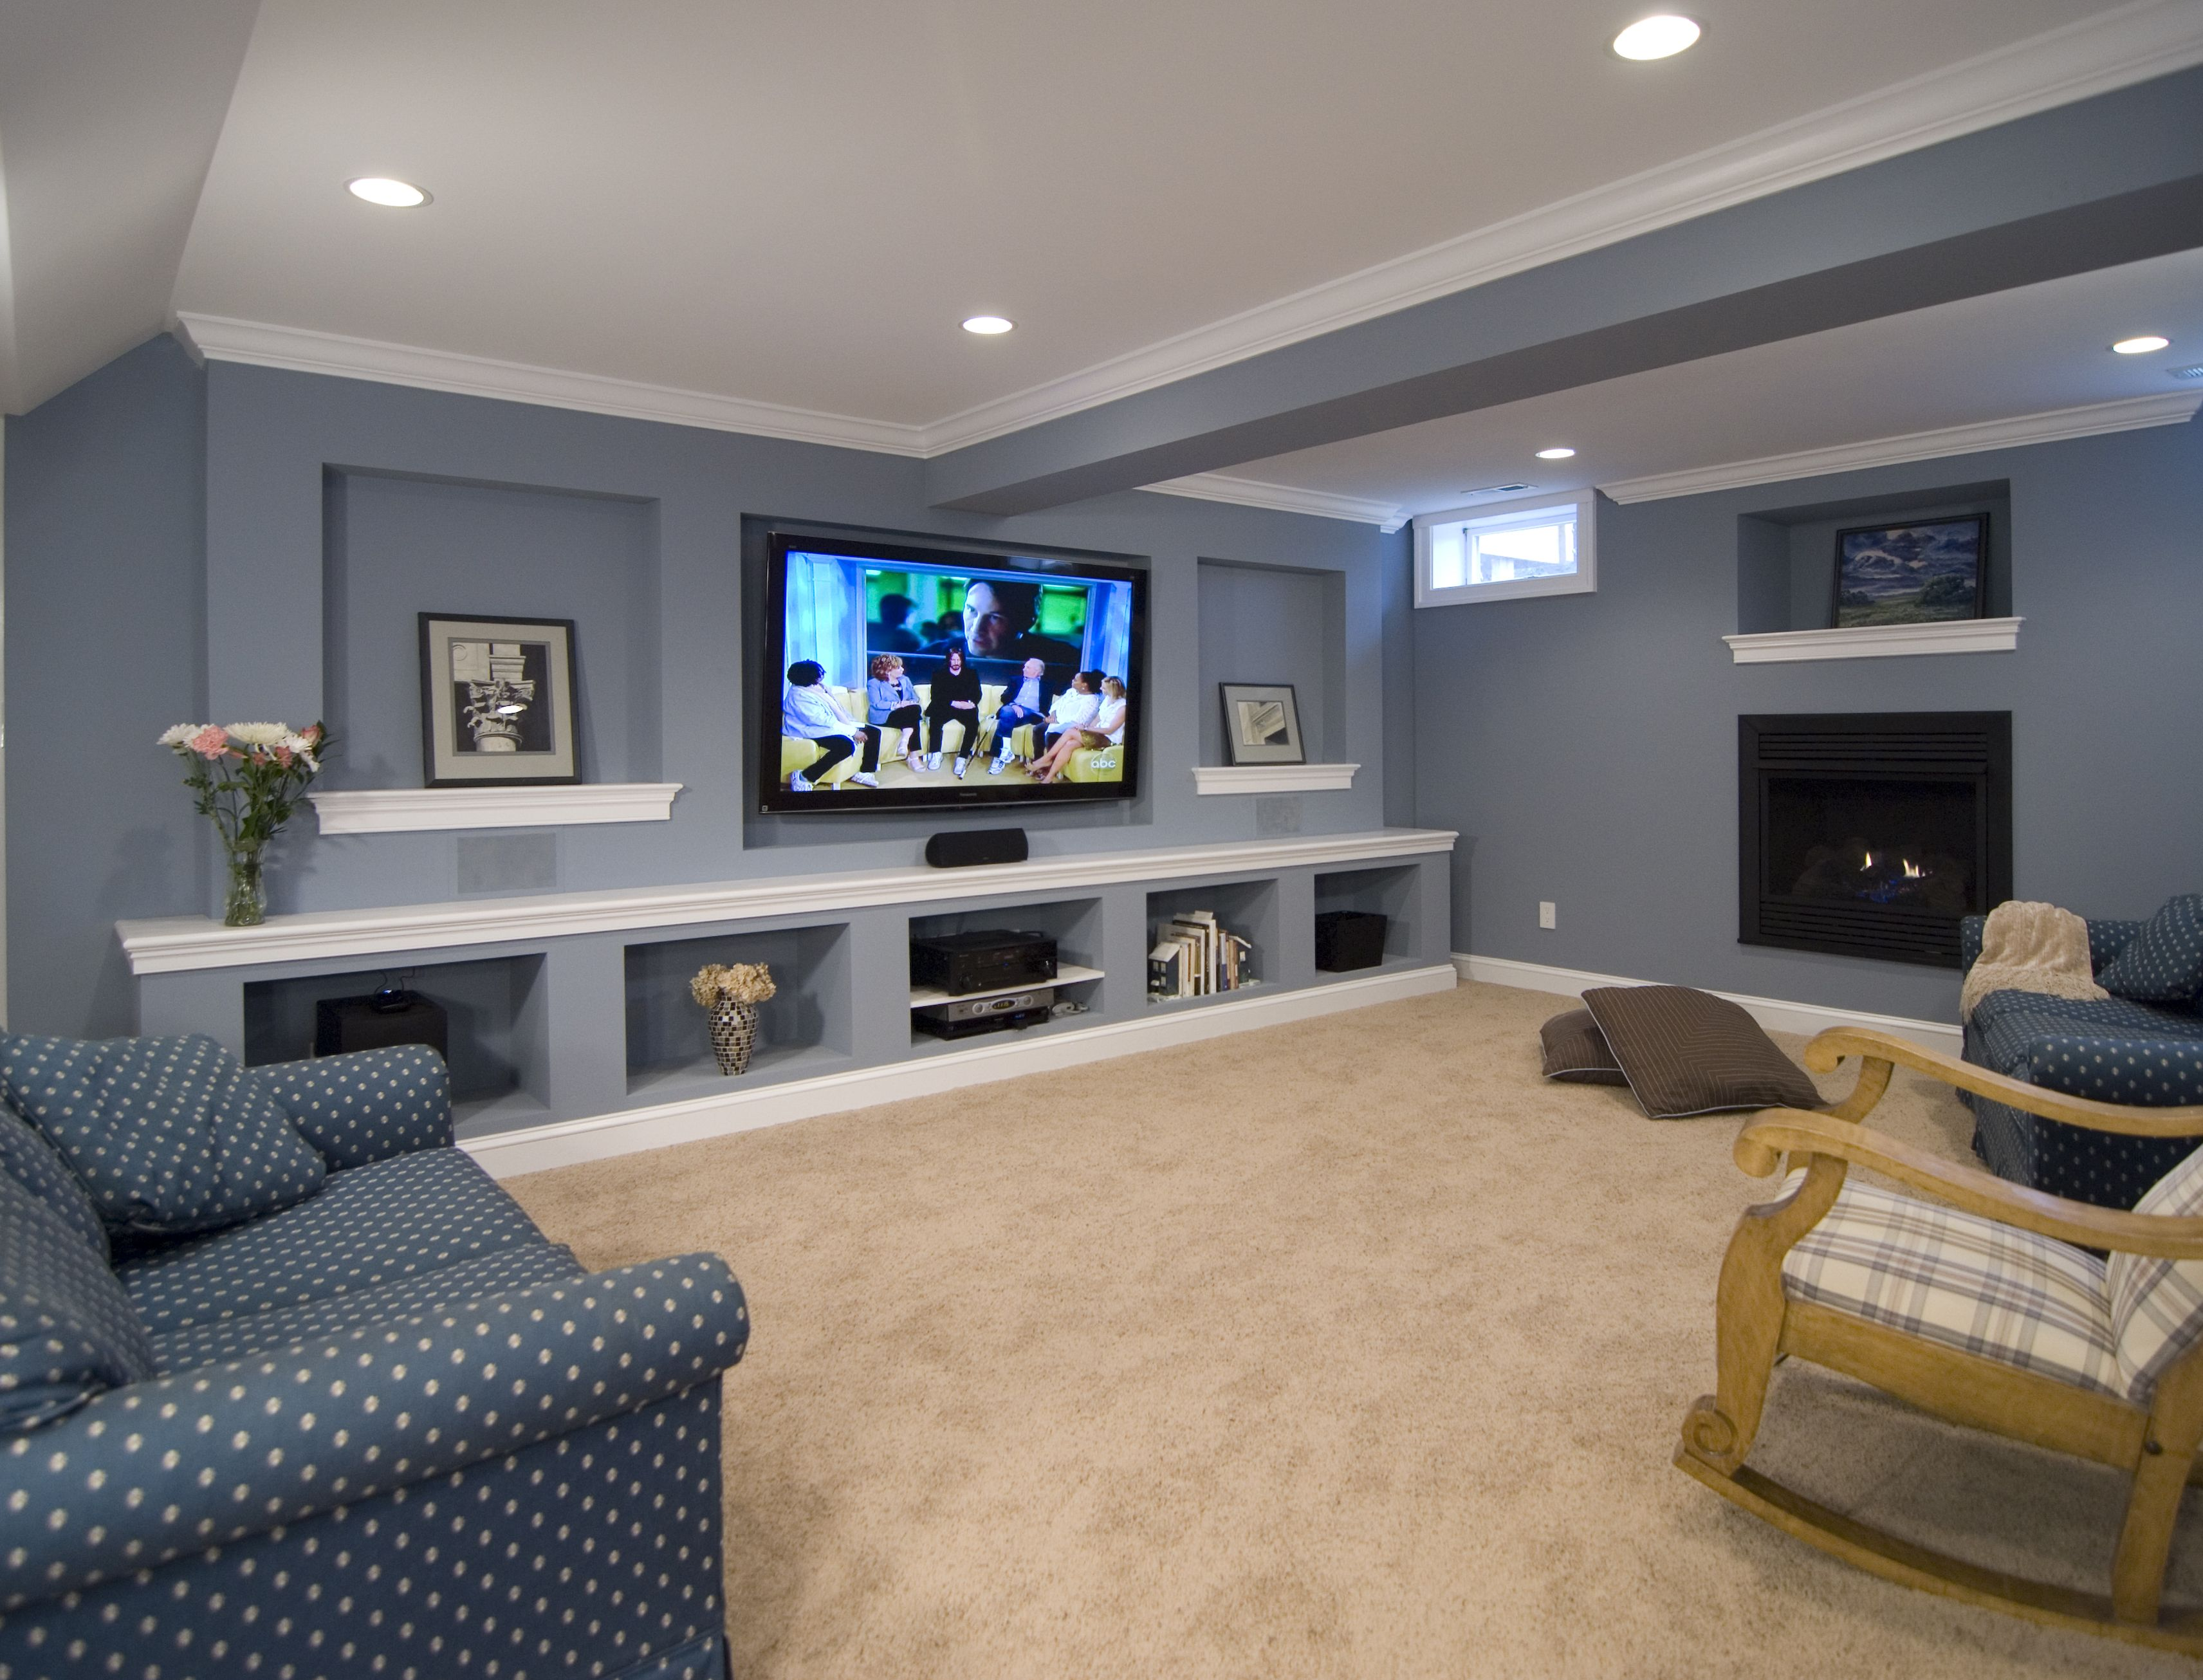 Basement Tv Ideas This Remodeled Basement Includes An Entertainment Wall And